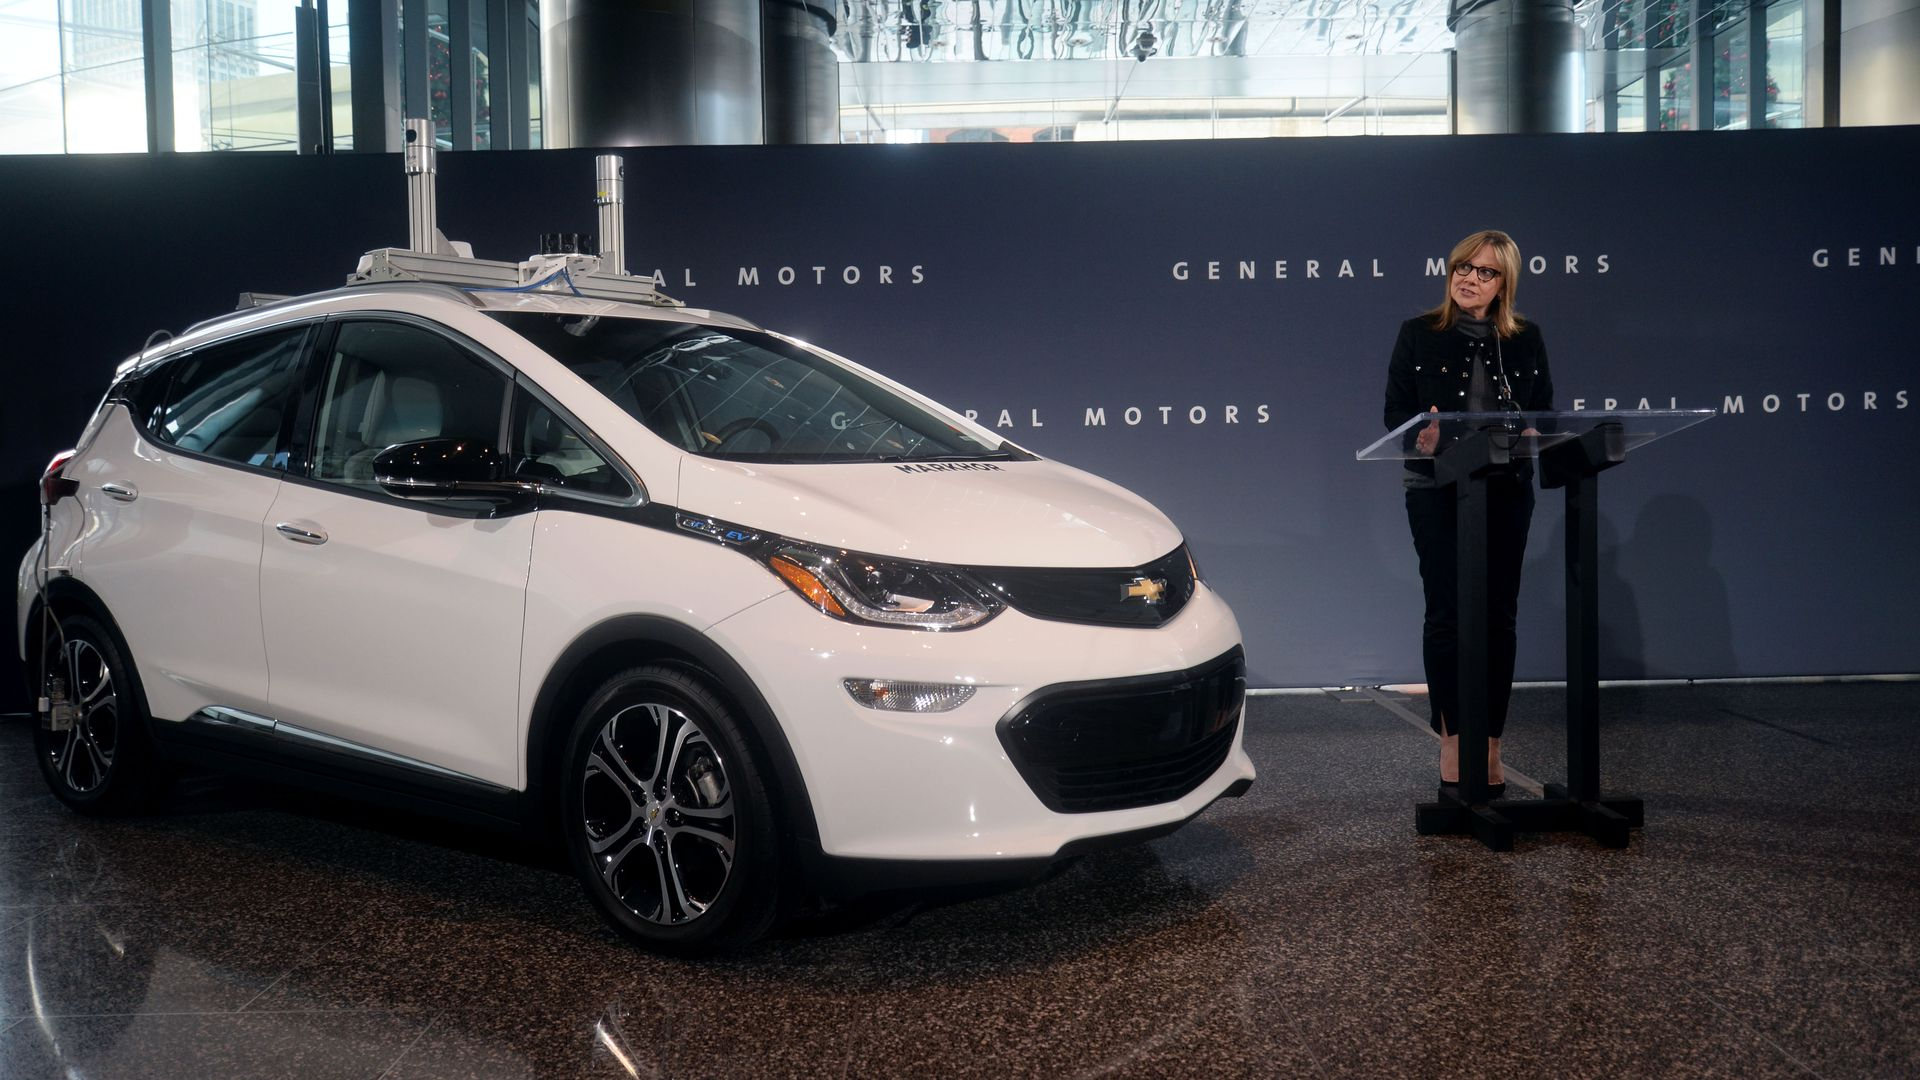 General Motors Cars >> Gm Still Plans To Launch Self Driving Cars Next Year Axios